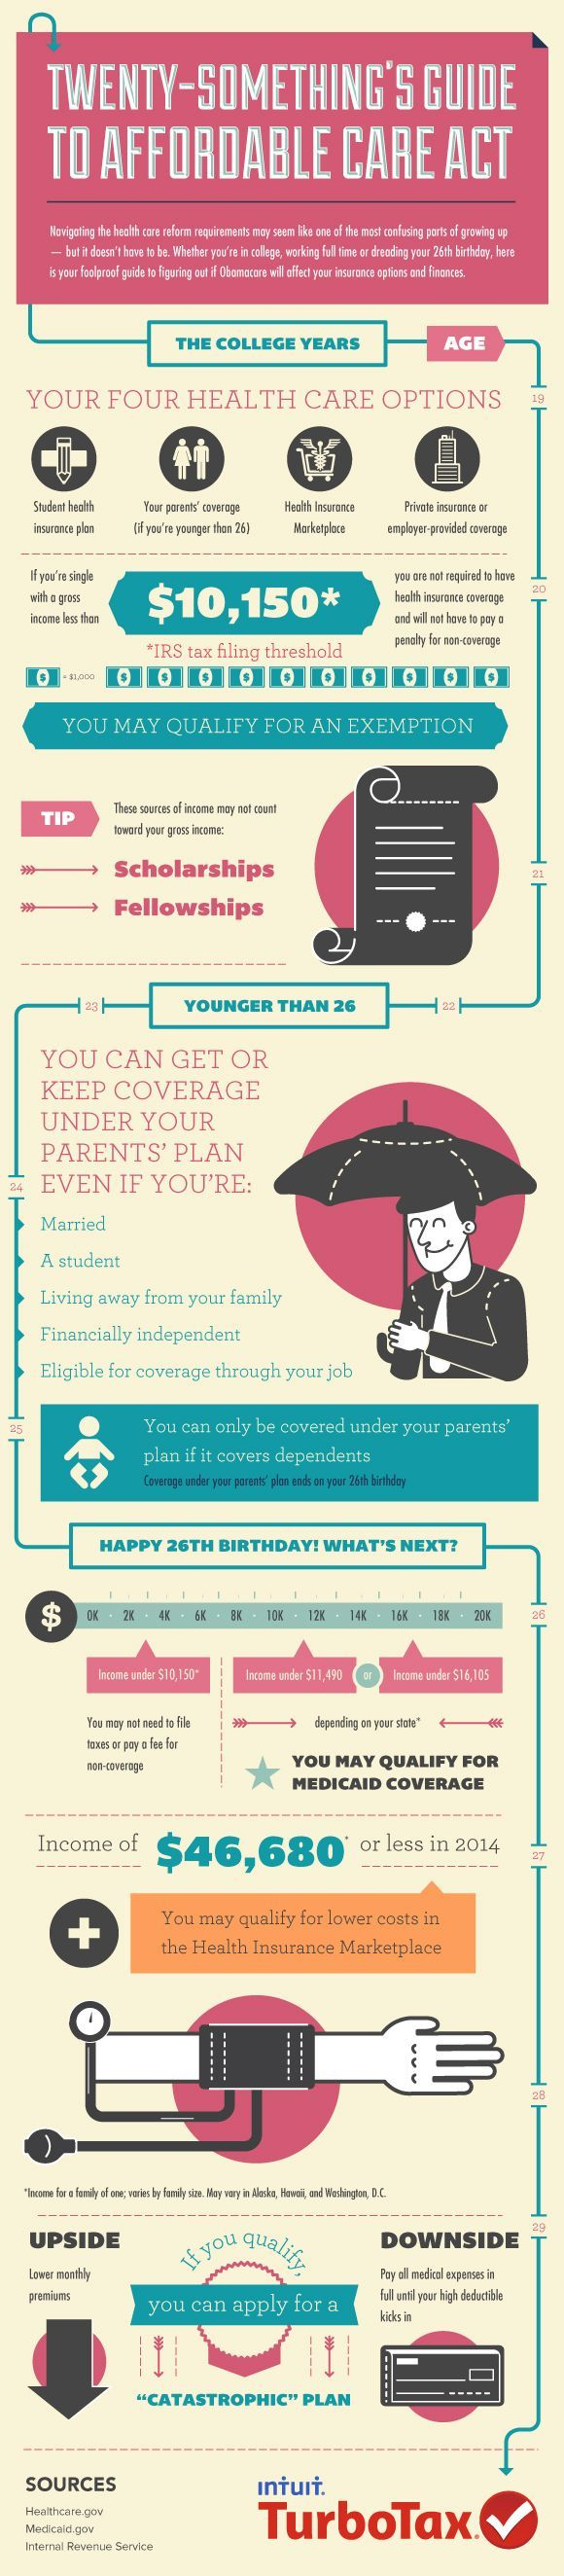 The 20- health insurance Guide to the Affordable Care Act...